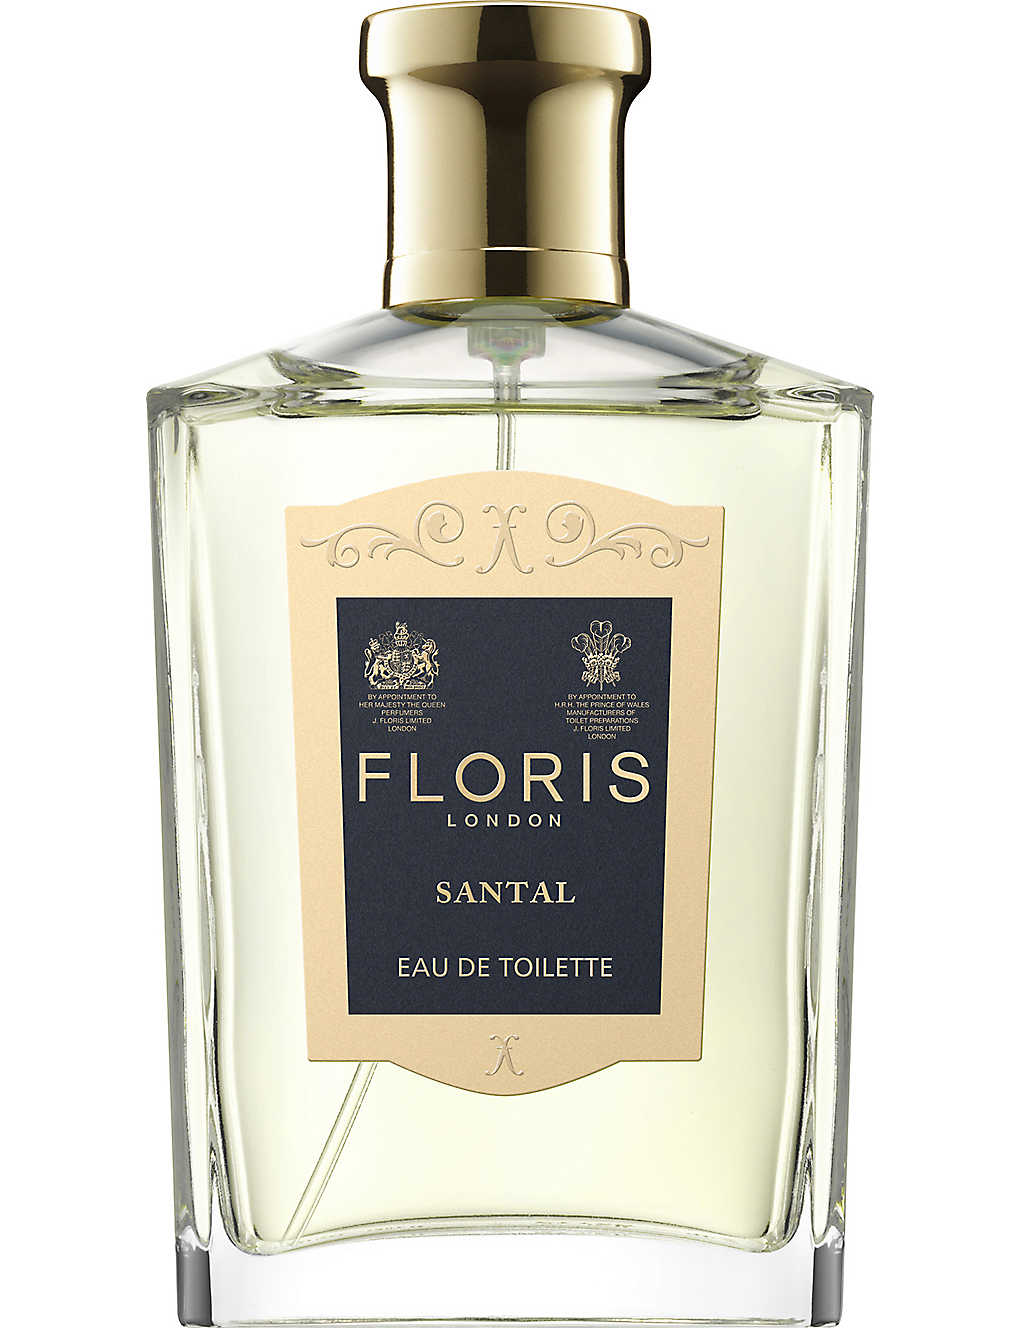 FLORIS: Santal eau de toilette 100ml